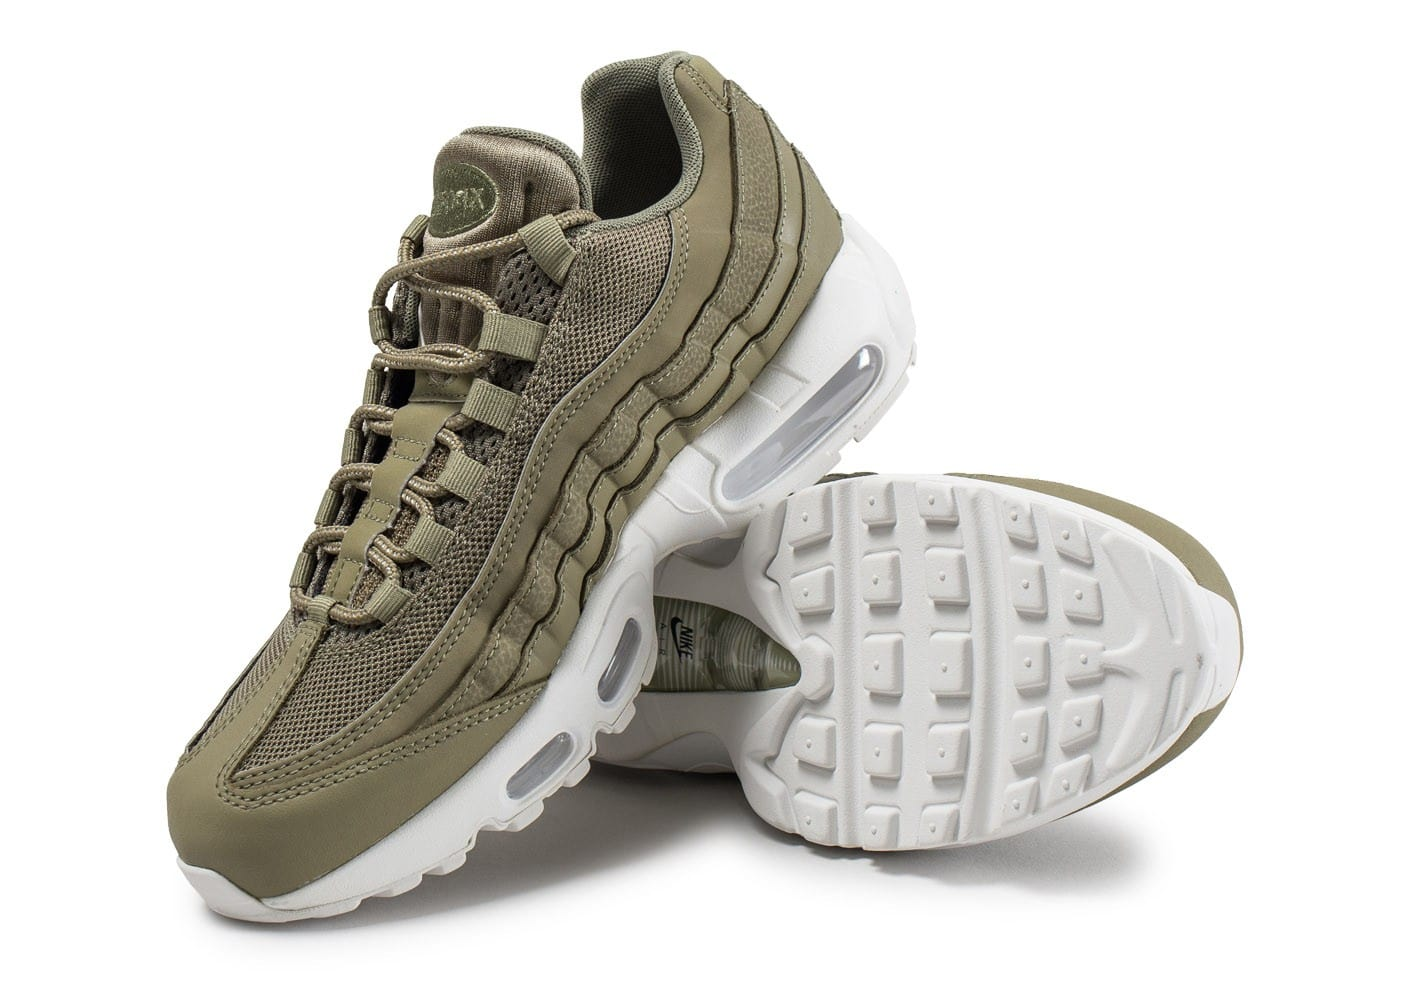 separation shoes 0c860 f43f2 ... Chaussures Nike Air Max 95 Essential kaki vue avant ...